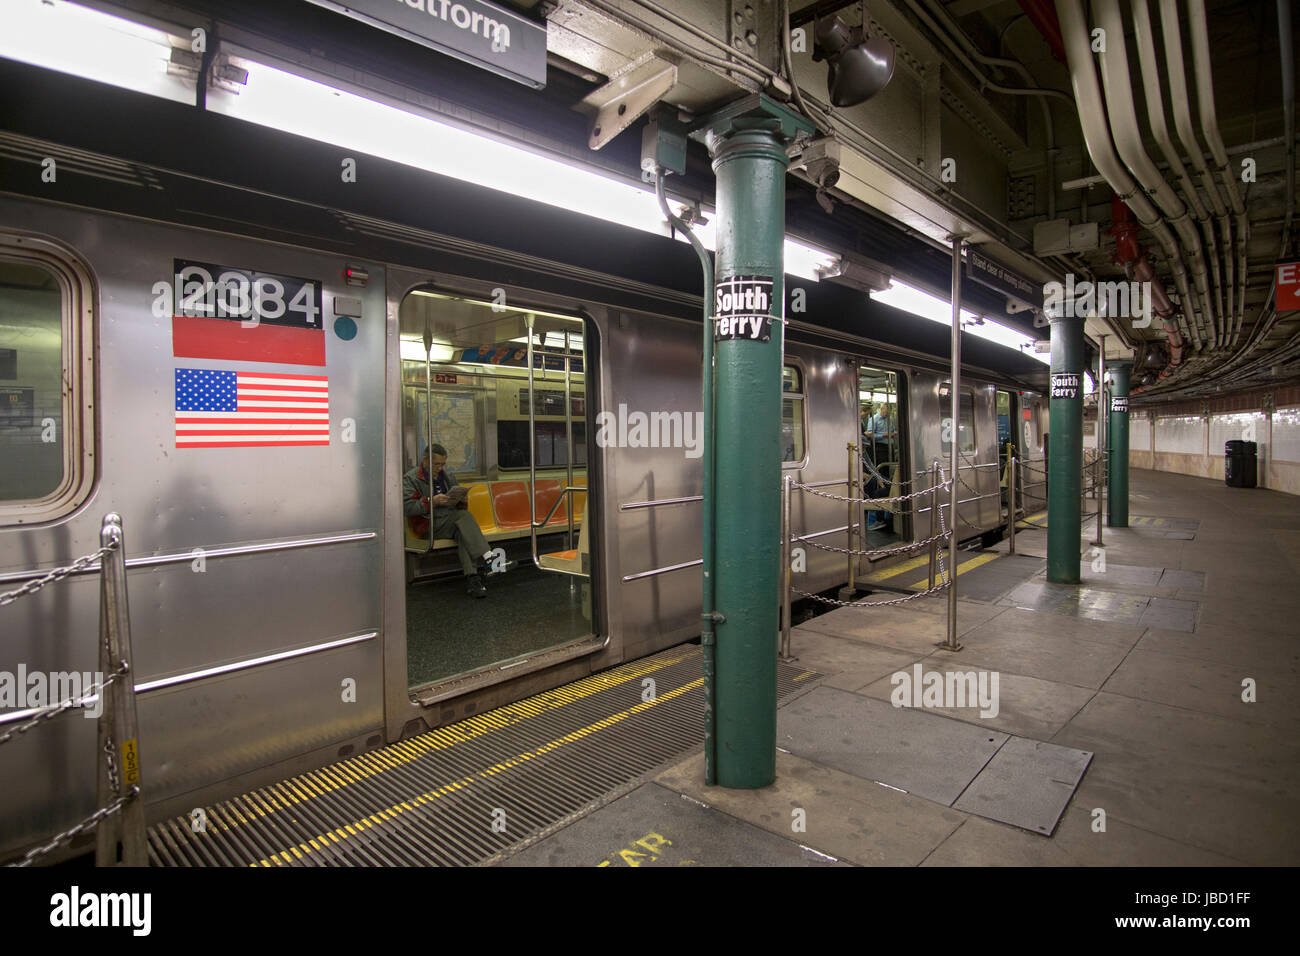 A subway trains at the South Ferry station, the last stop on the IRT number 1 train. In battery PArk, downtown, - Stock Image